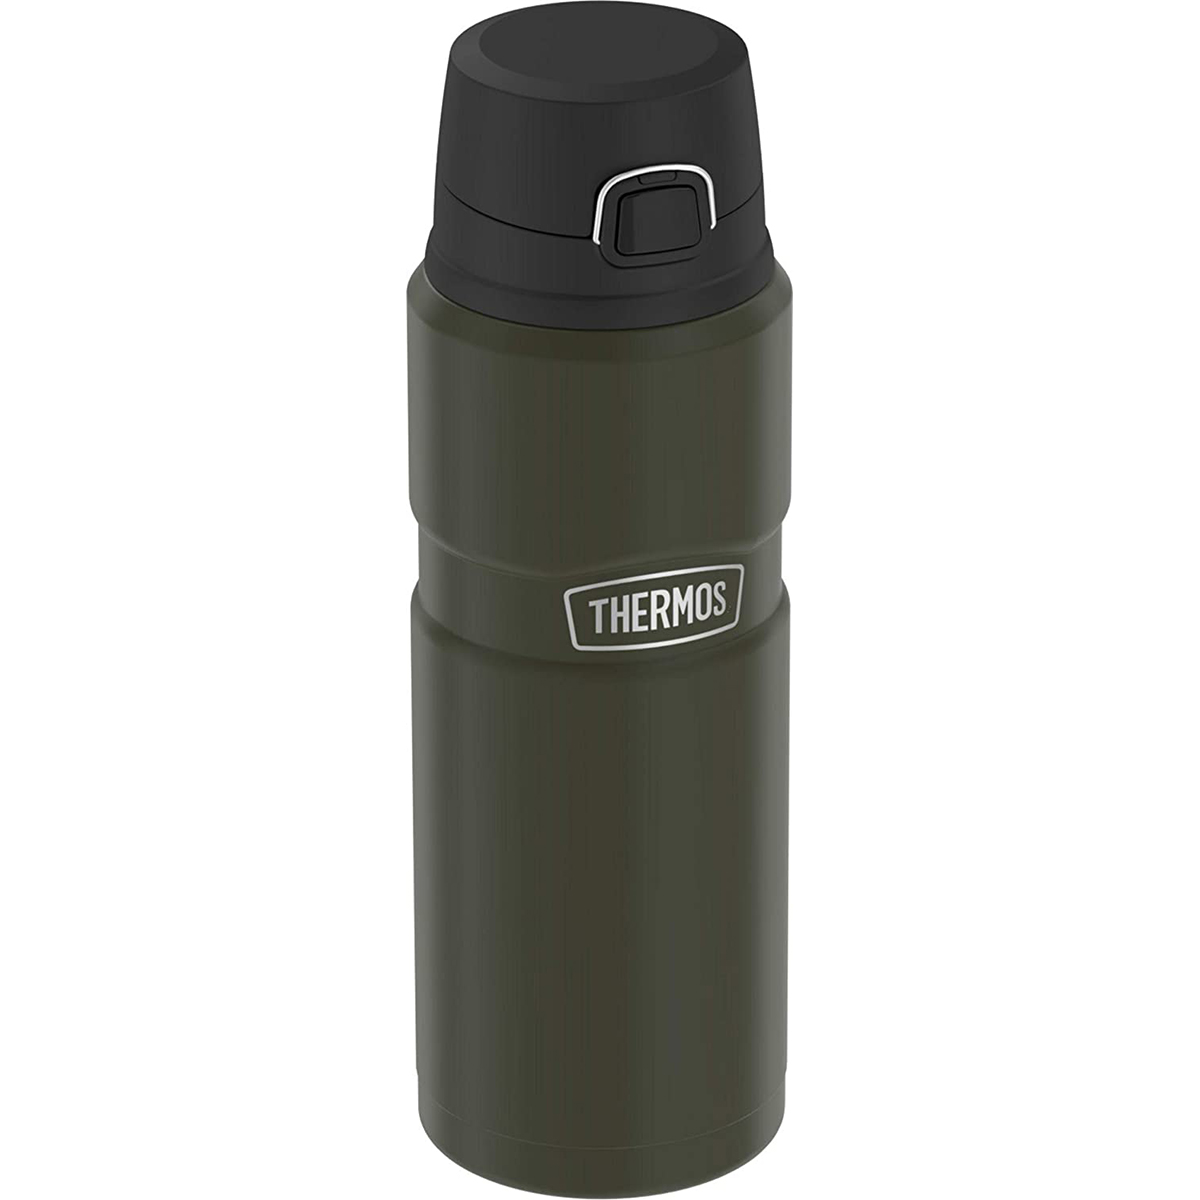 thumbnail 8 - Thermos 24 oz. Stainless King Vacuum Insulated Stainless Steel Drink Bottle